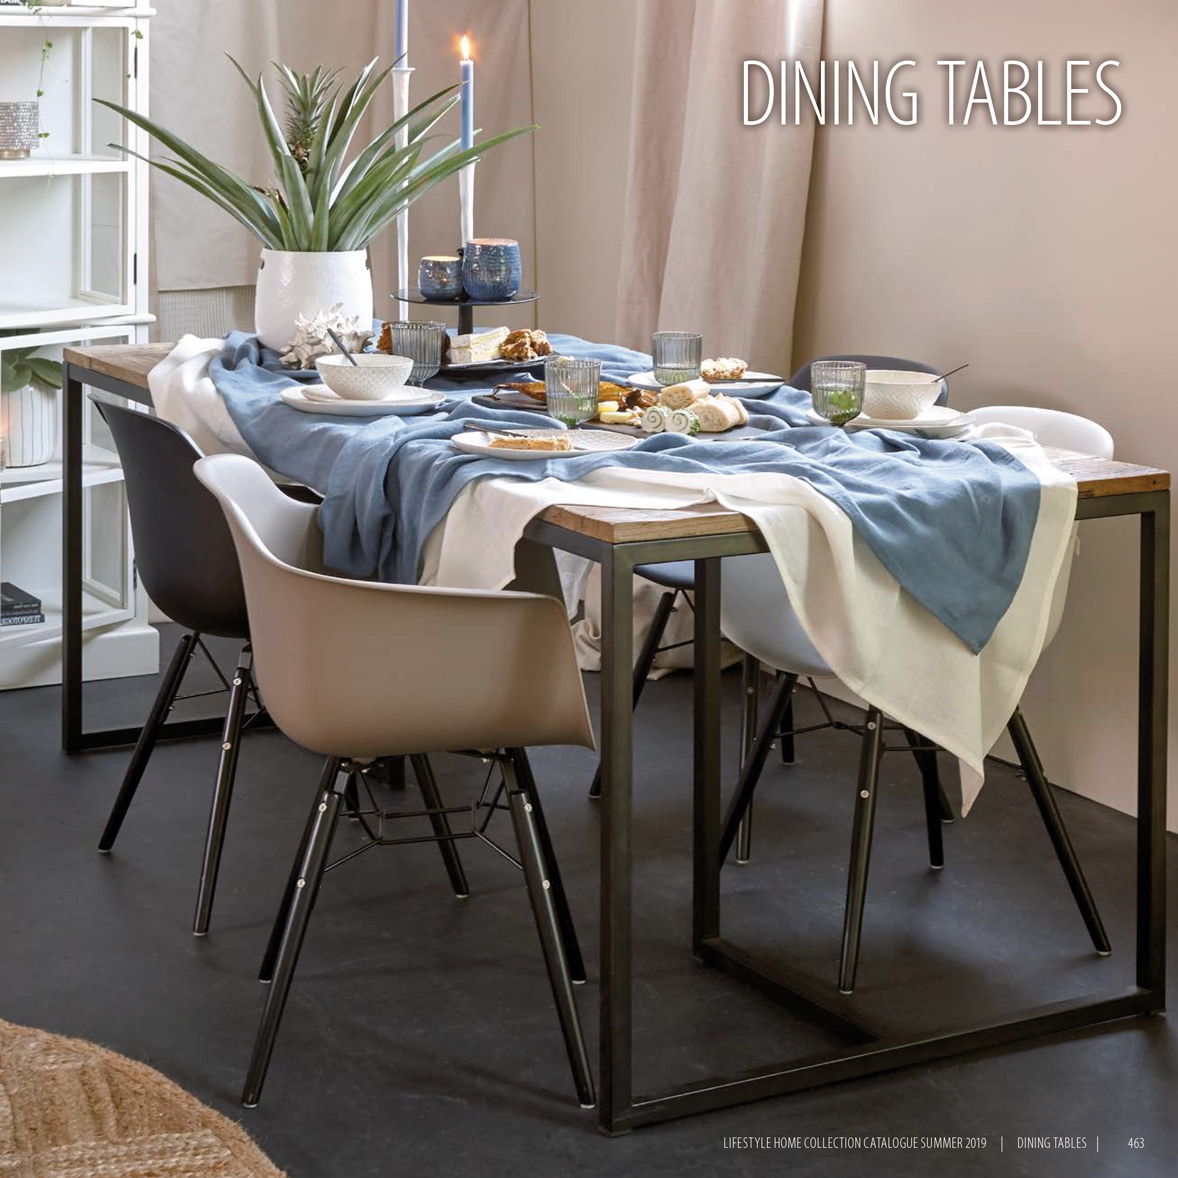 Tables » LifeStyle - Home Collection